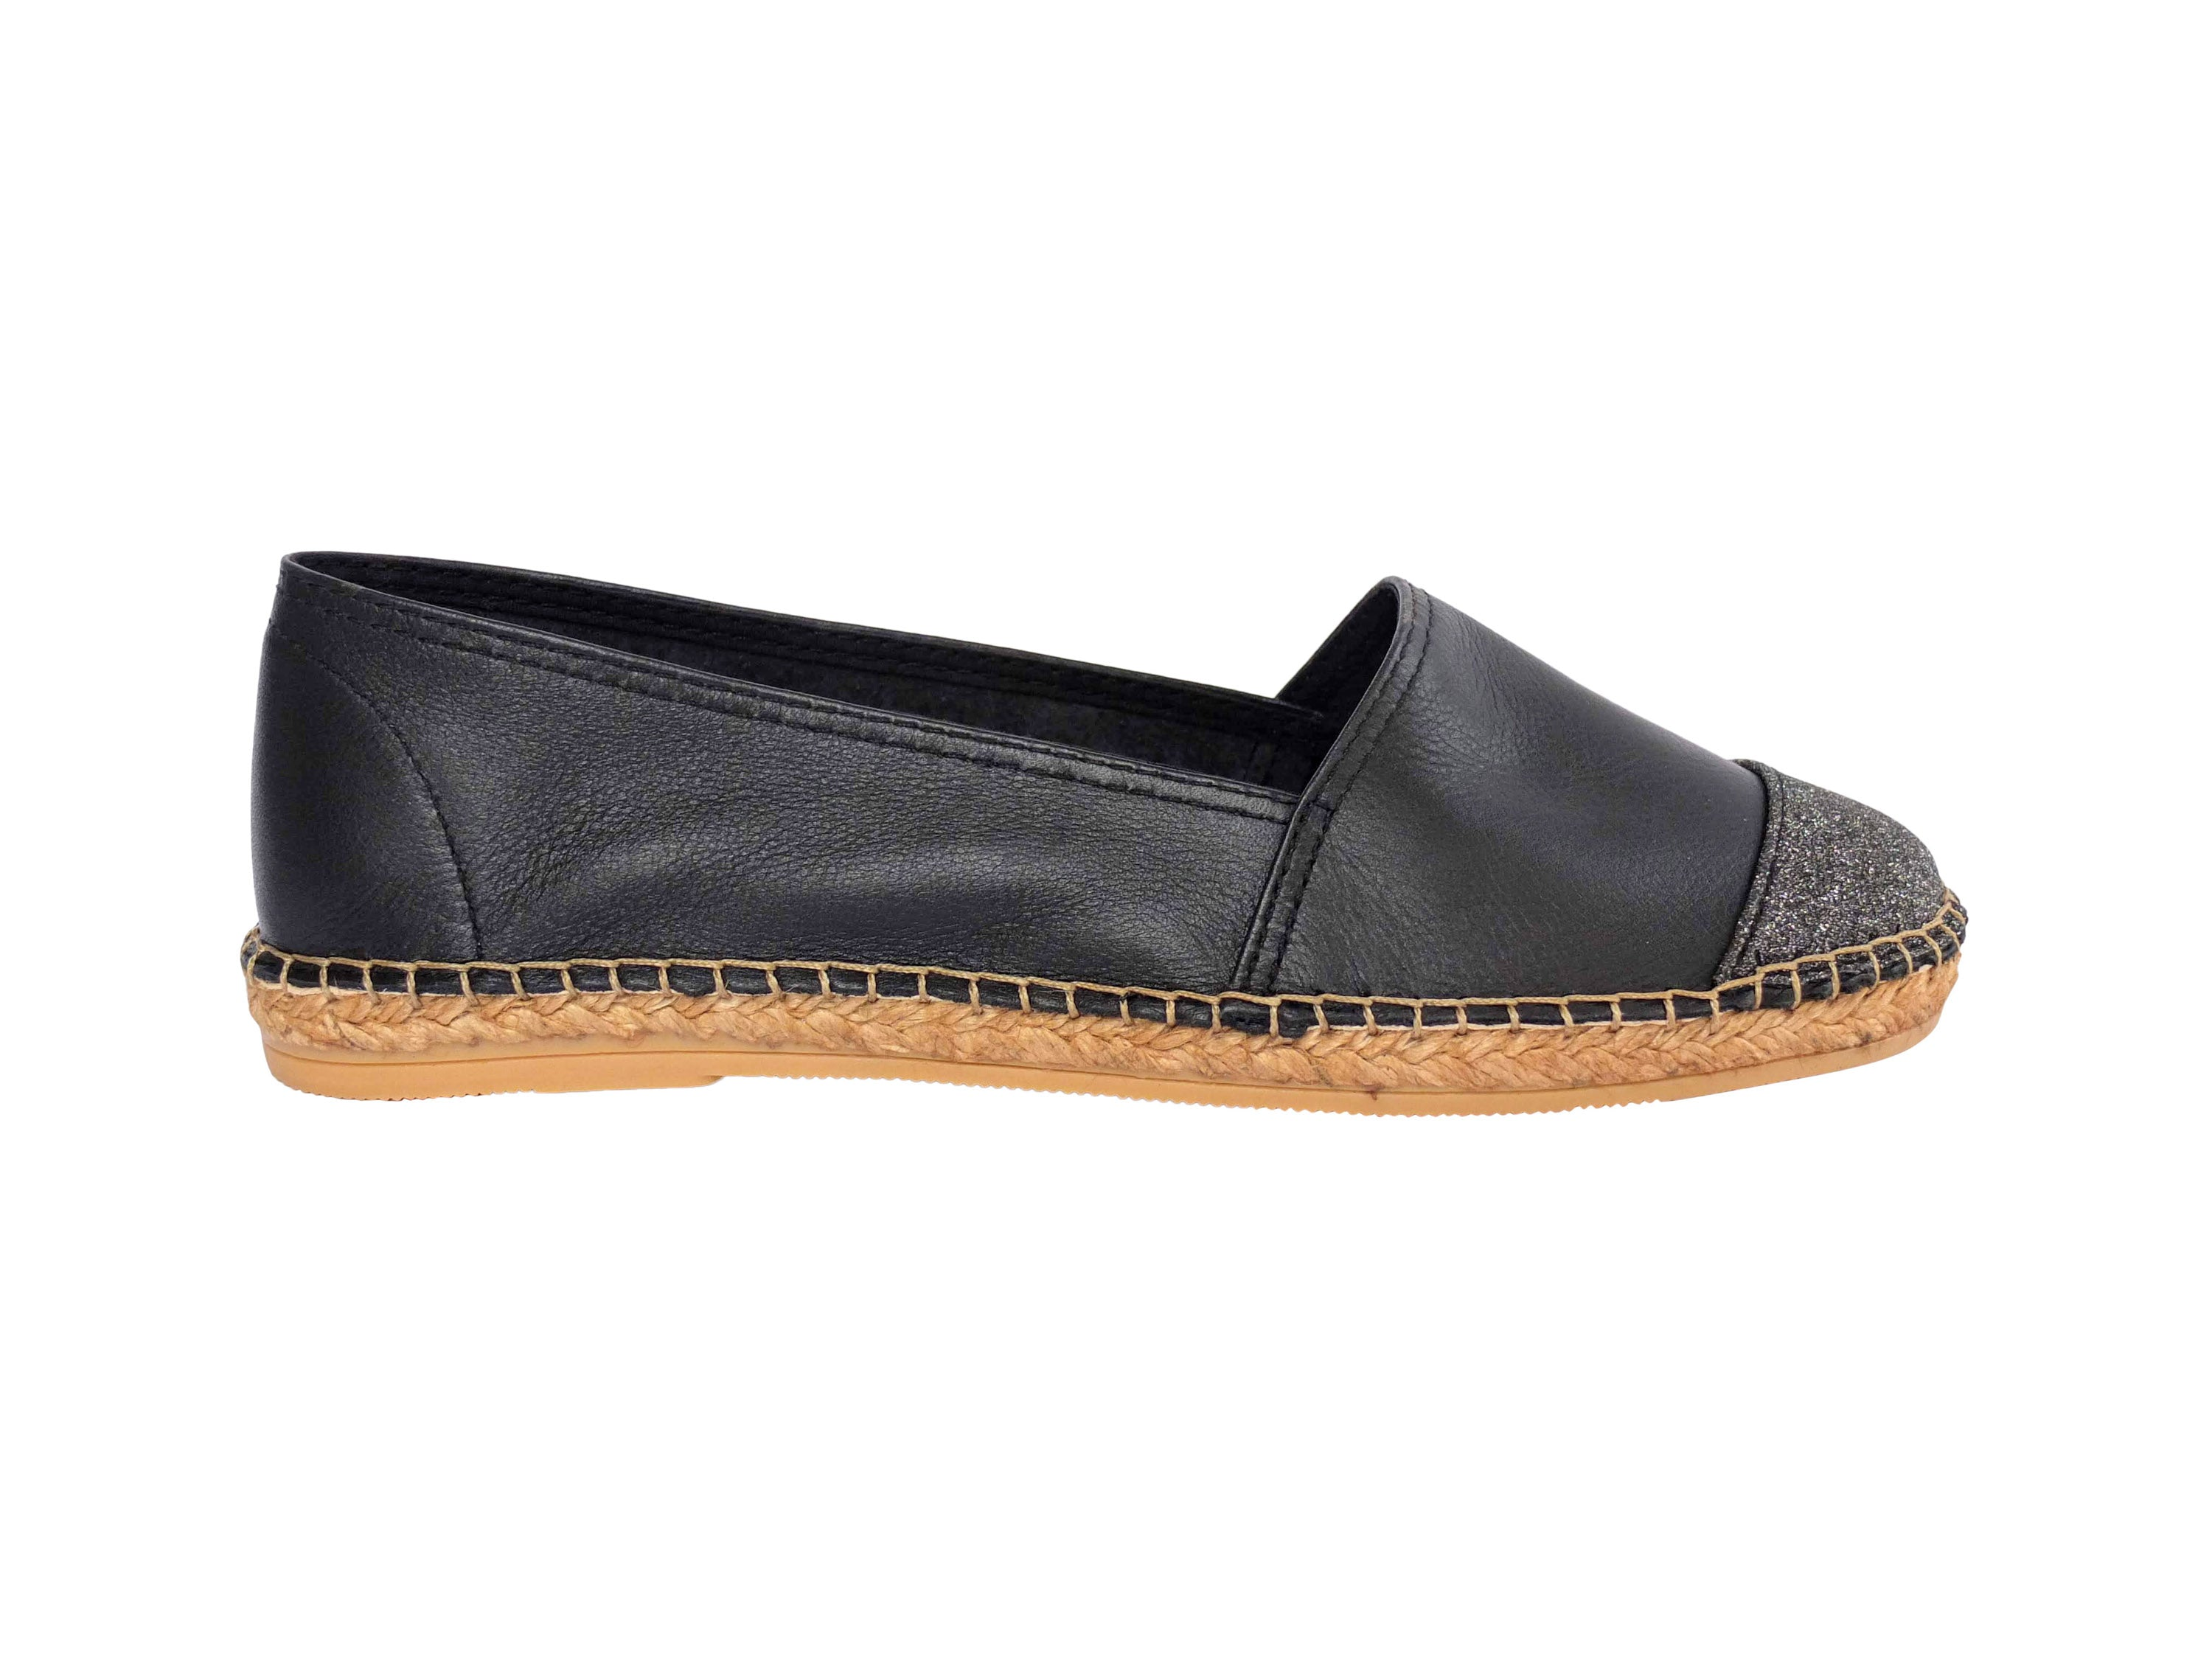 b6c43210ff8 Midnight Leather with Glitter Toe Classic Espadrille